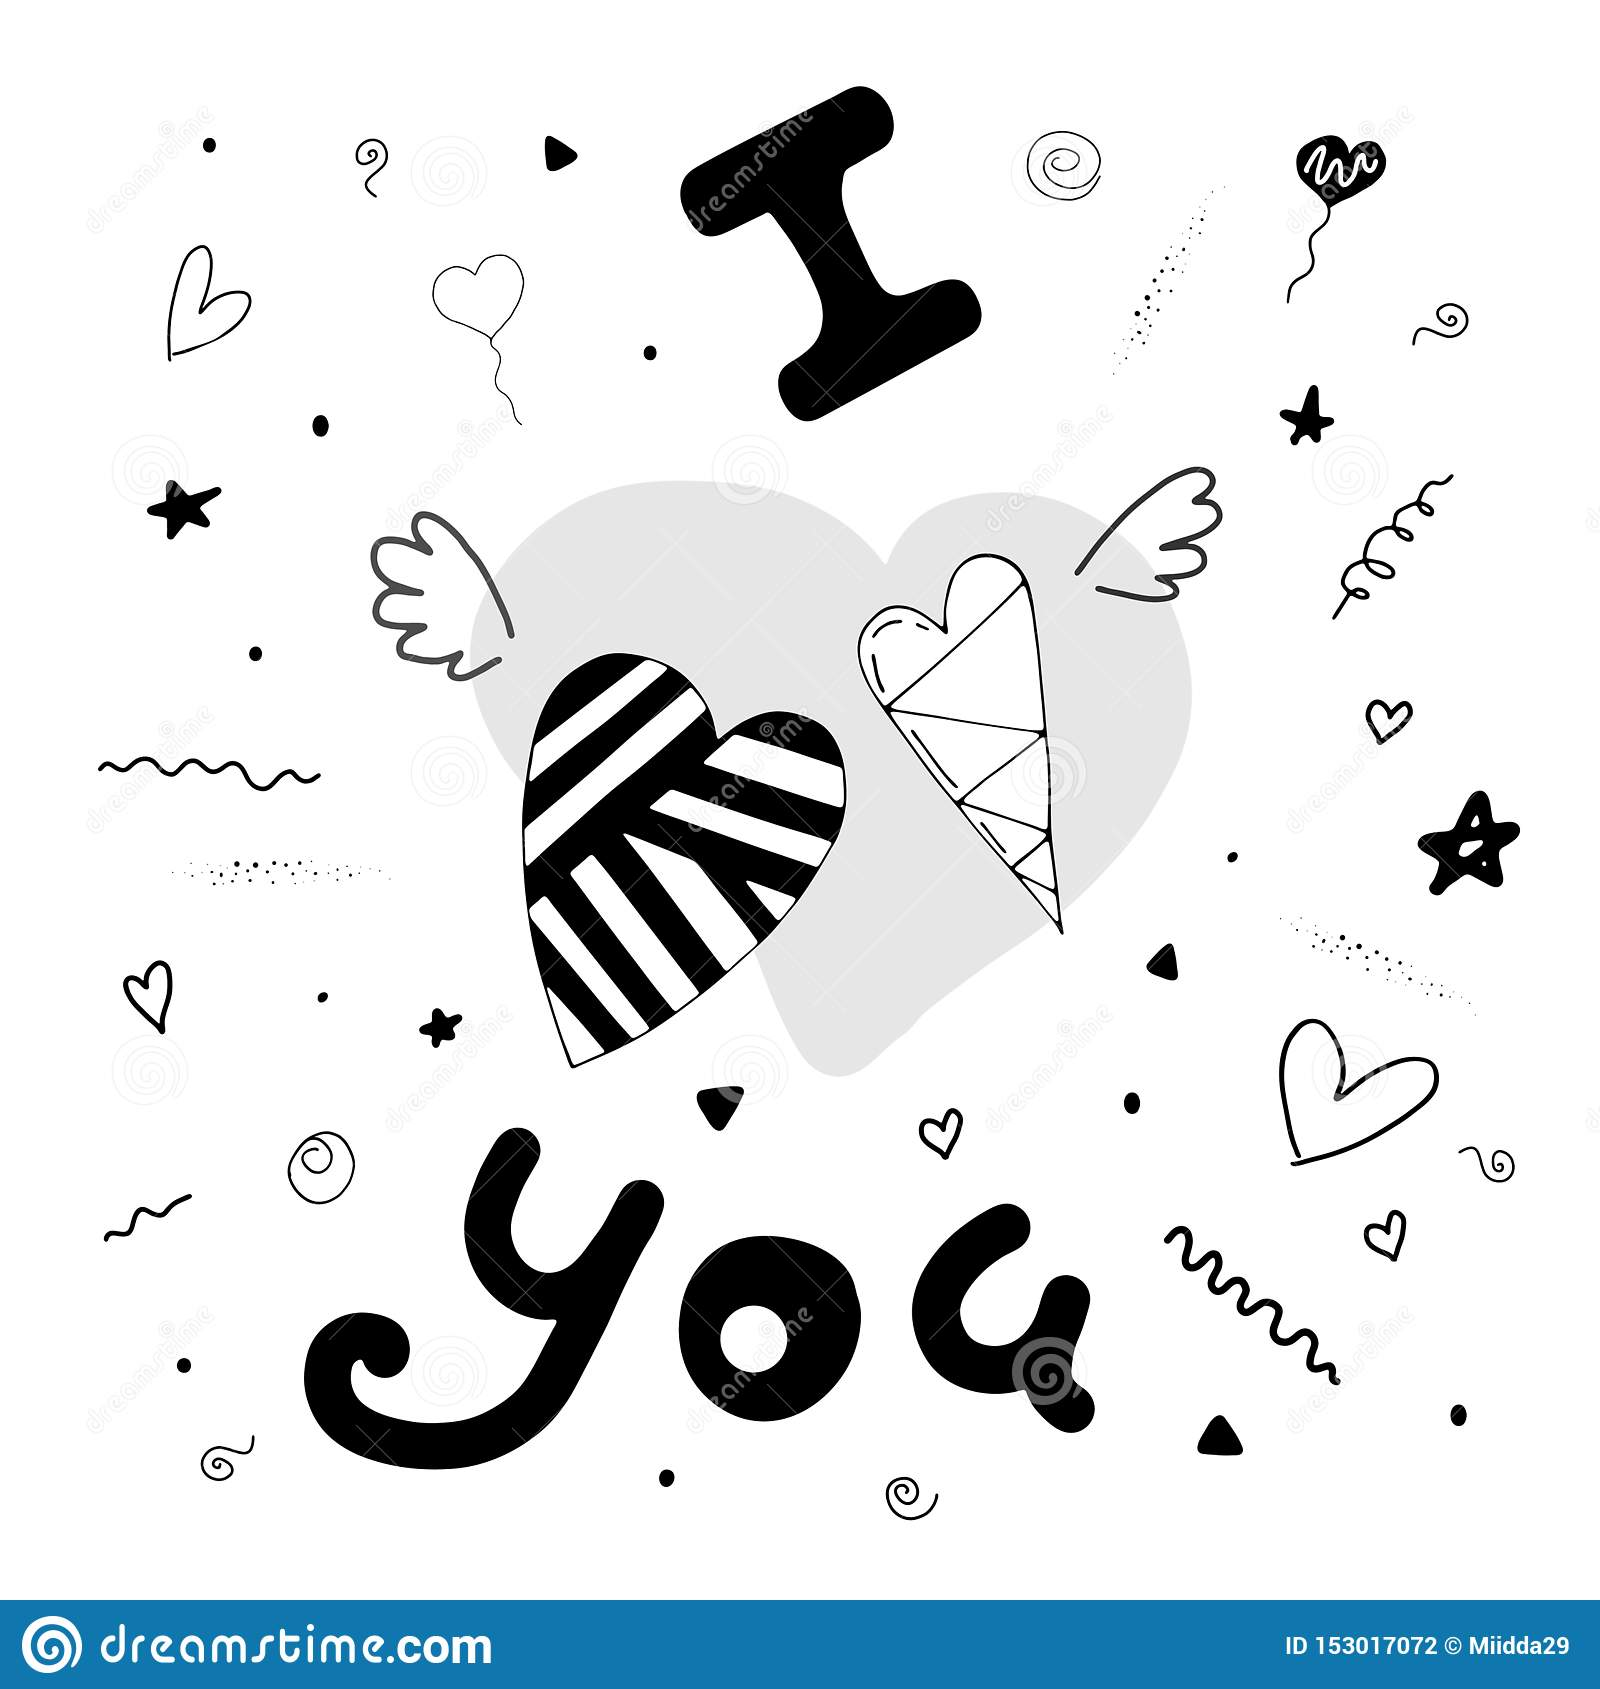 I love you. Cute card with hearts, wings and cute elements.